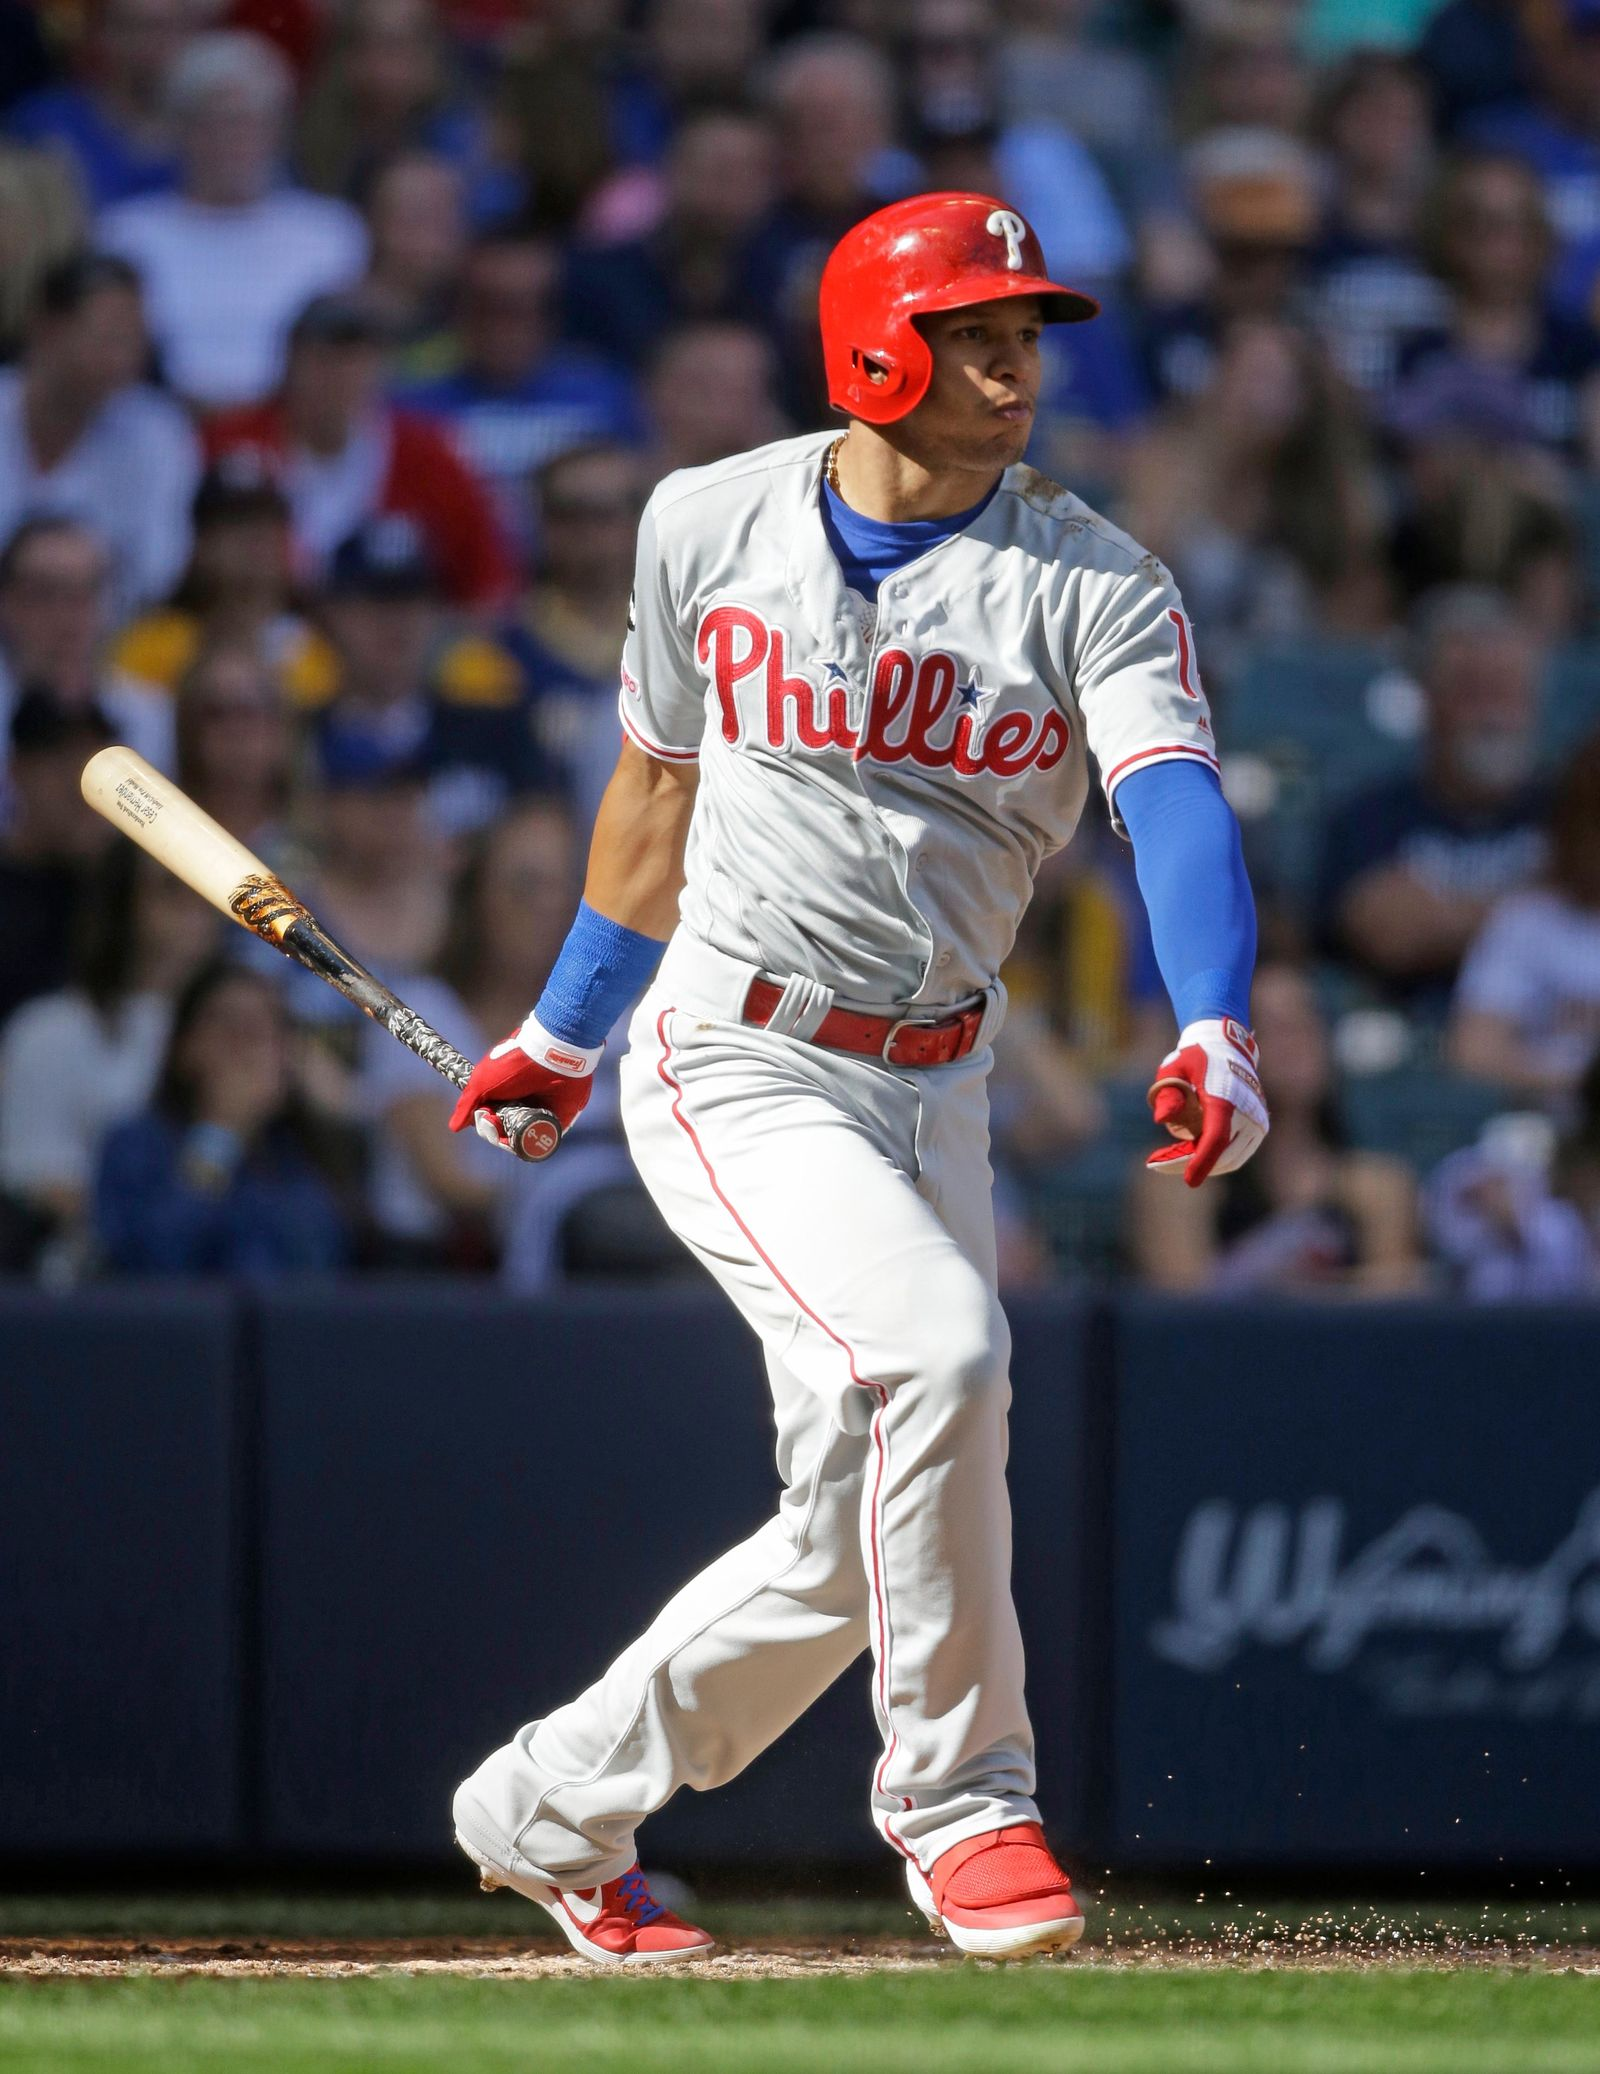 Philadelphia Phillies' Cesar Hernandez watches his run-scoring single against the Milwaukee Brewers during the fourth inning of a baseball game Saturday, May 25, 2019, in Milwaukee. (AP Photo/Jeffrey Phelps)